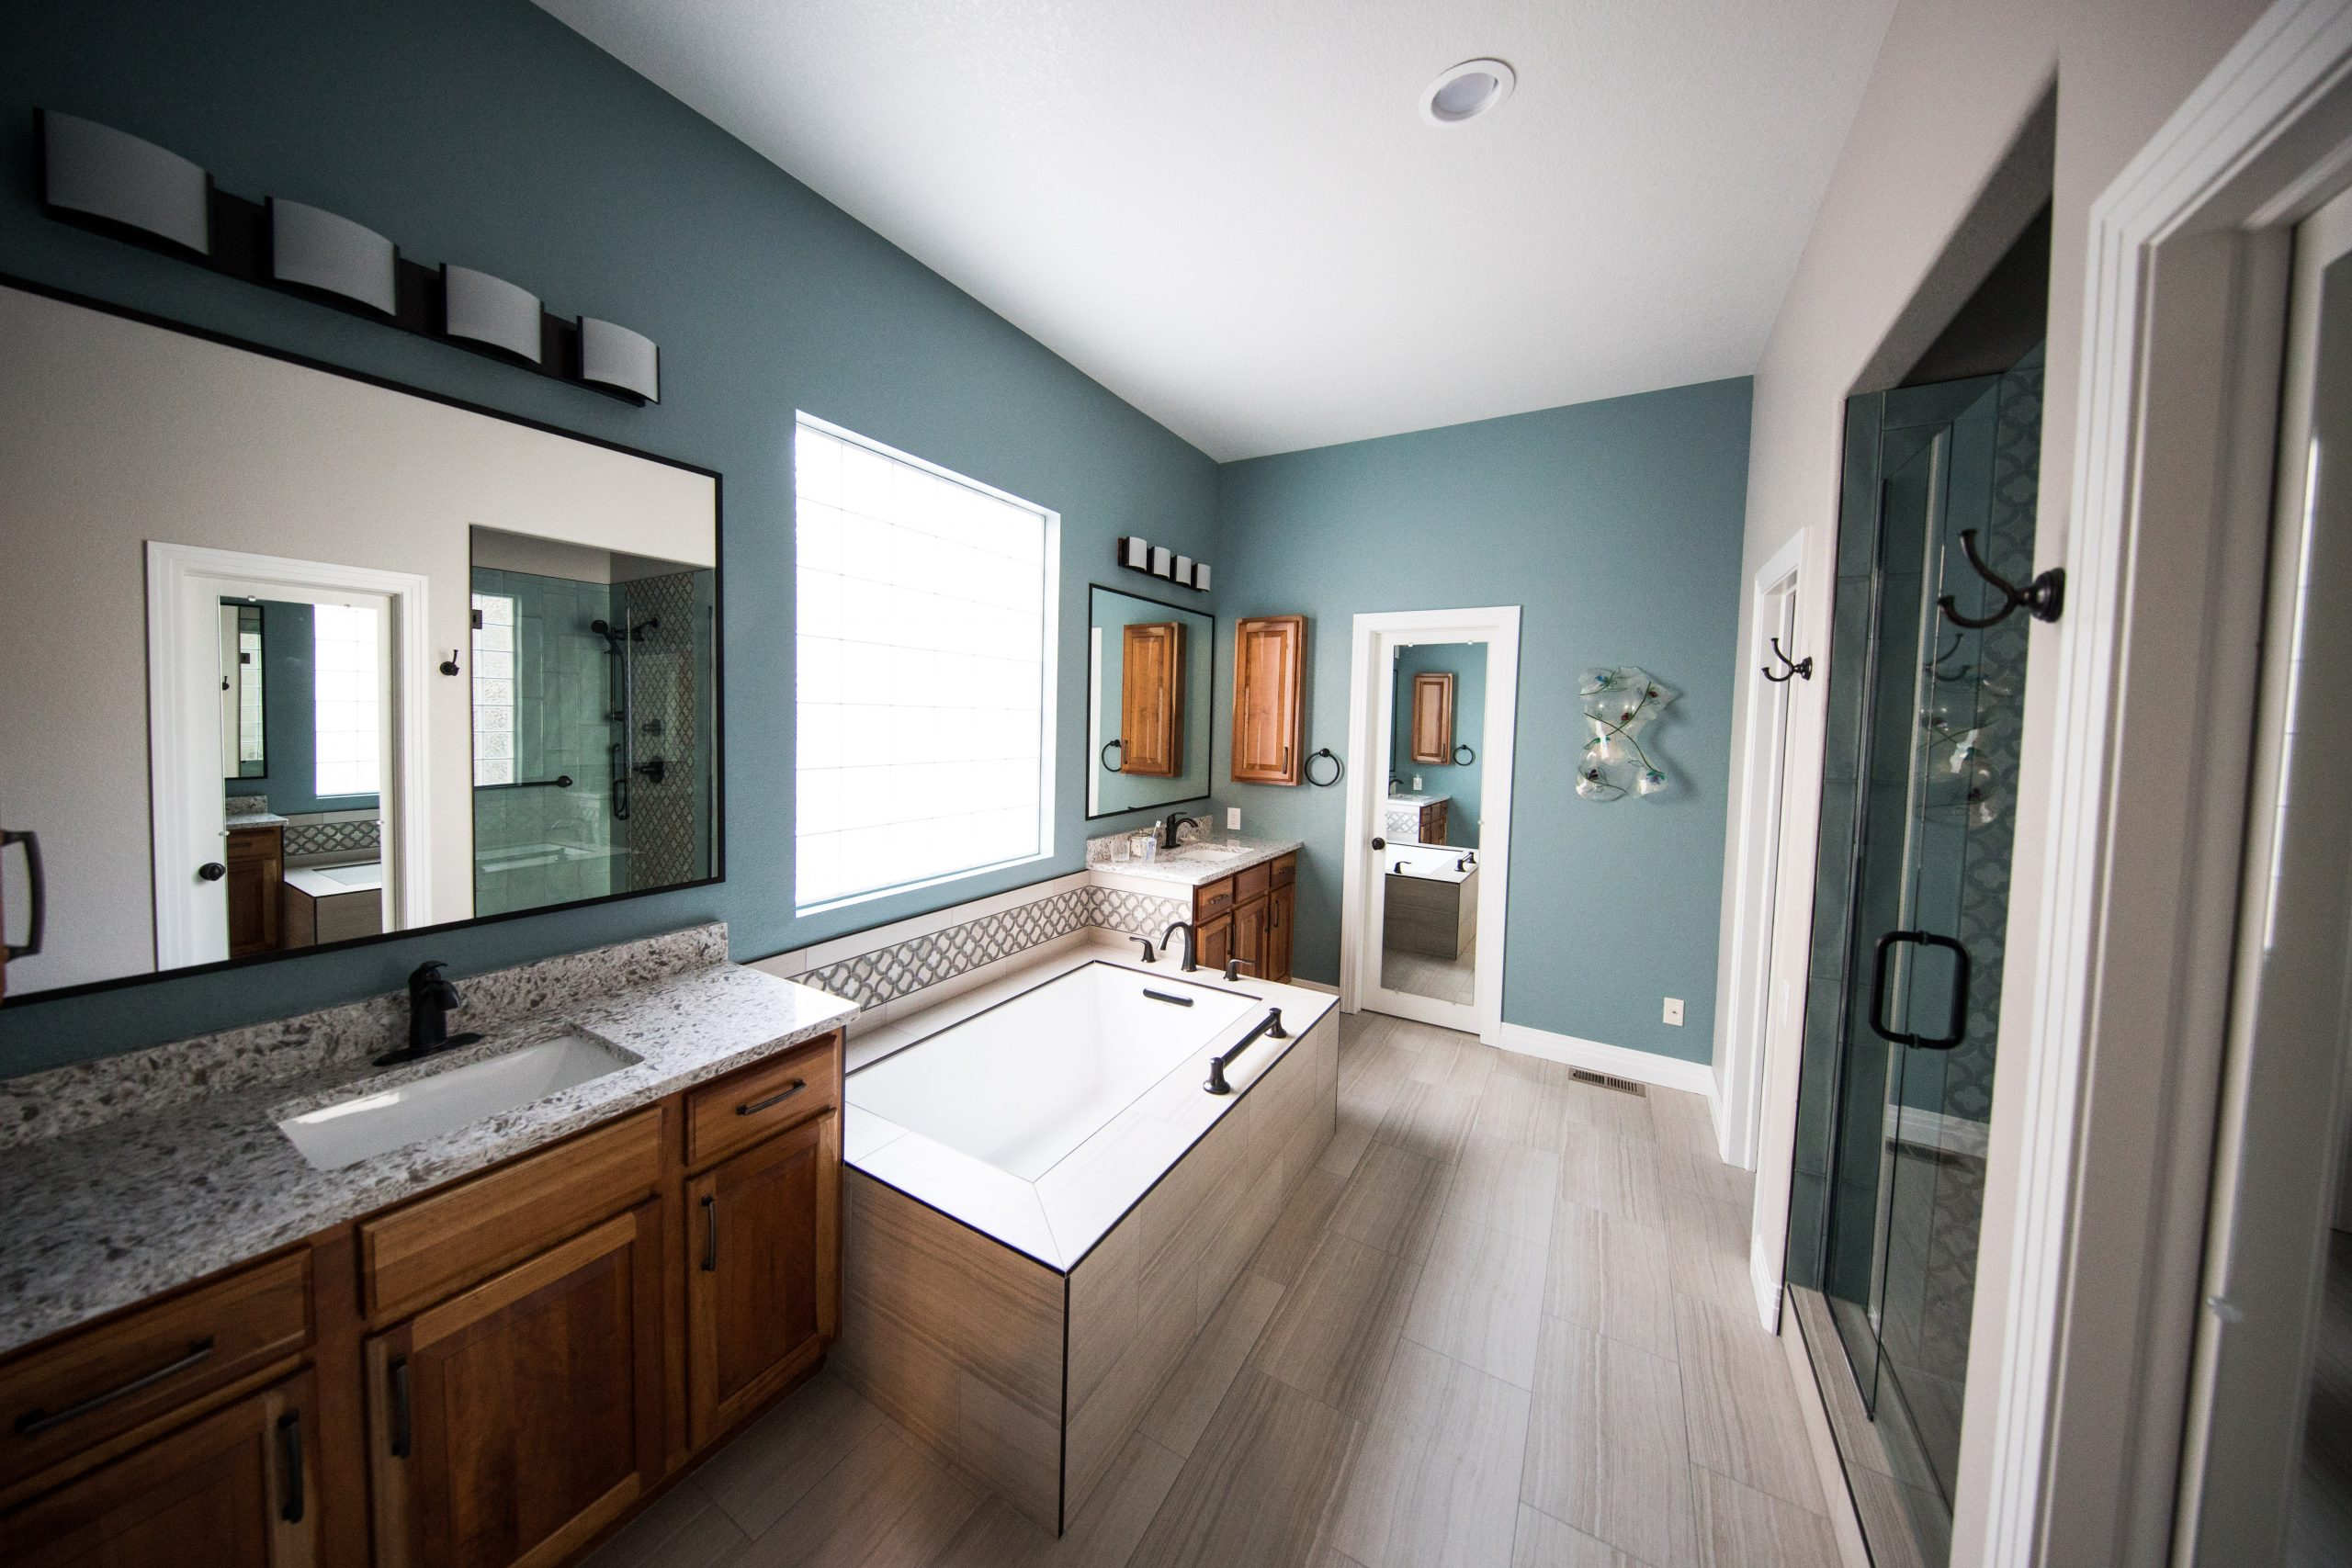 5 Important Things to Do to Paint a Bathroom Right